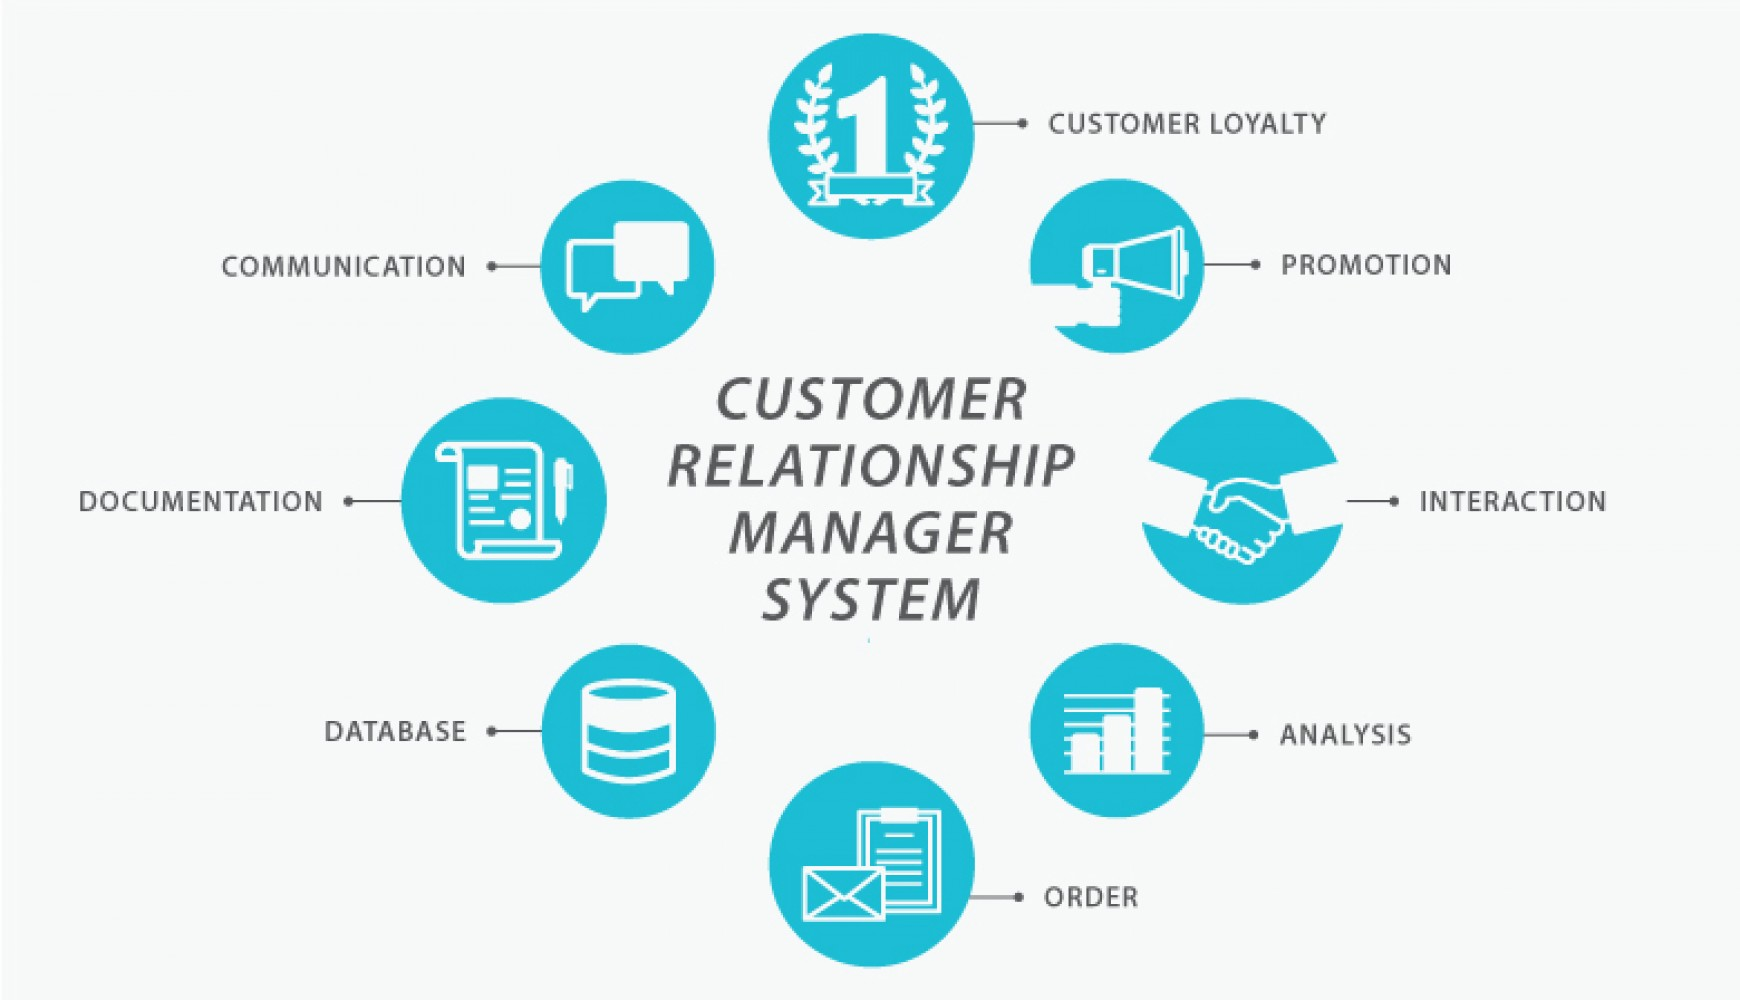 crm information Find the best crm software for your organization compare top crm software tools with customer reviews, pricing and free demos.